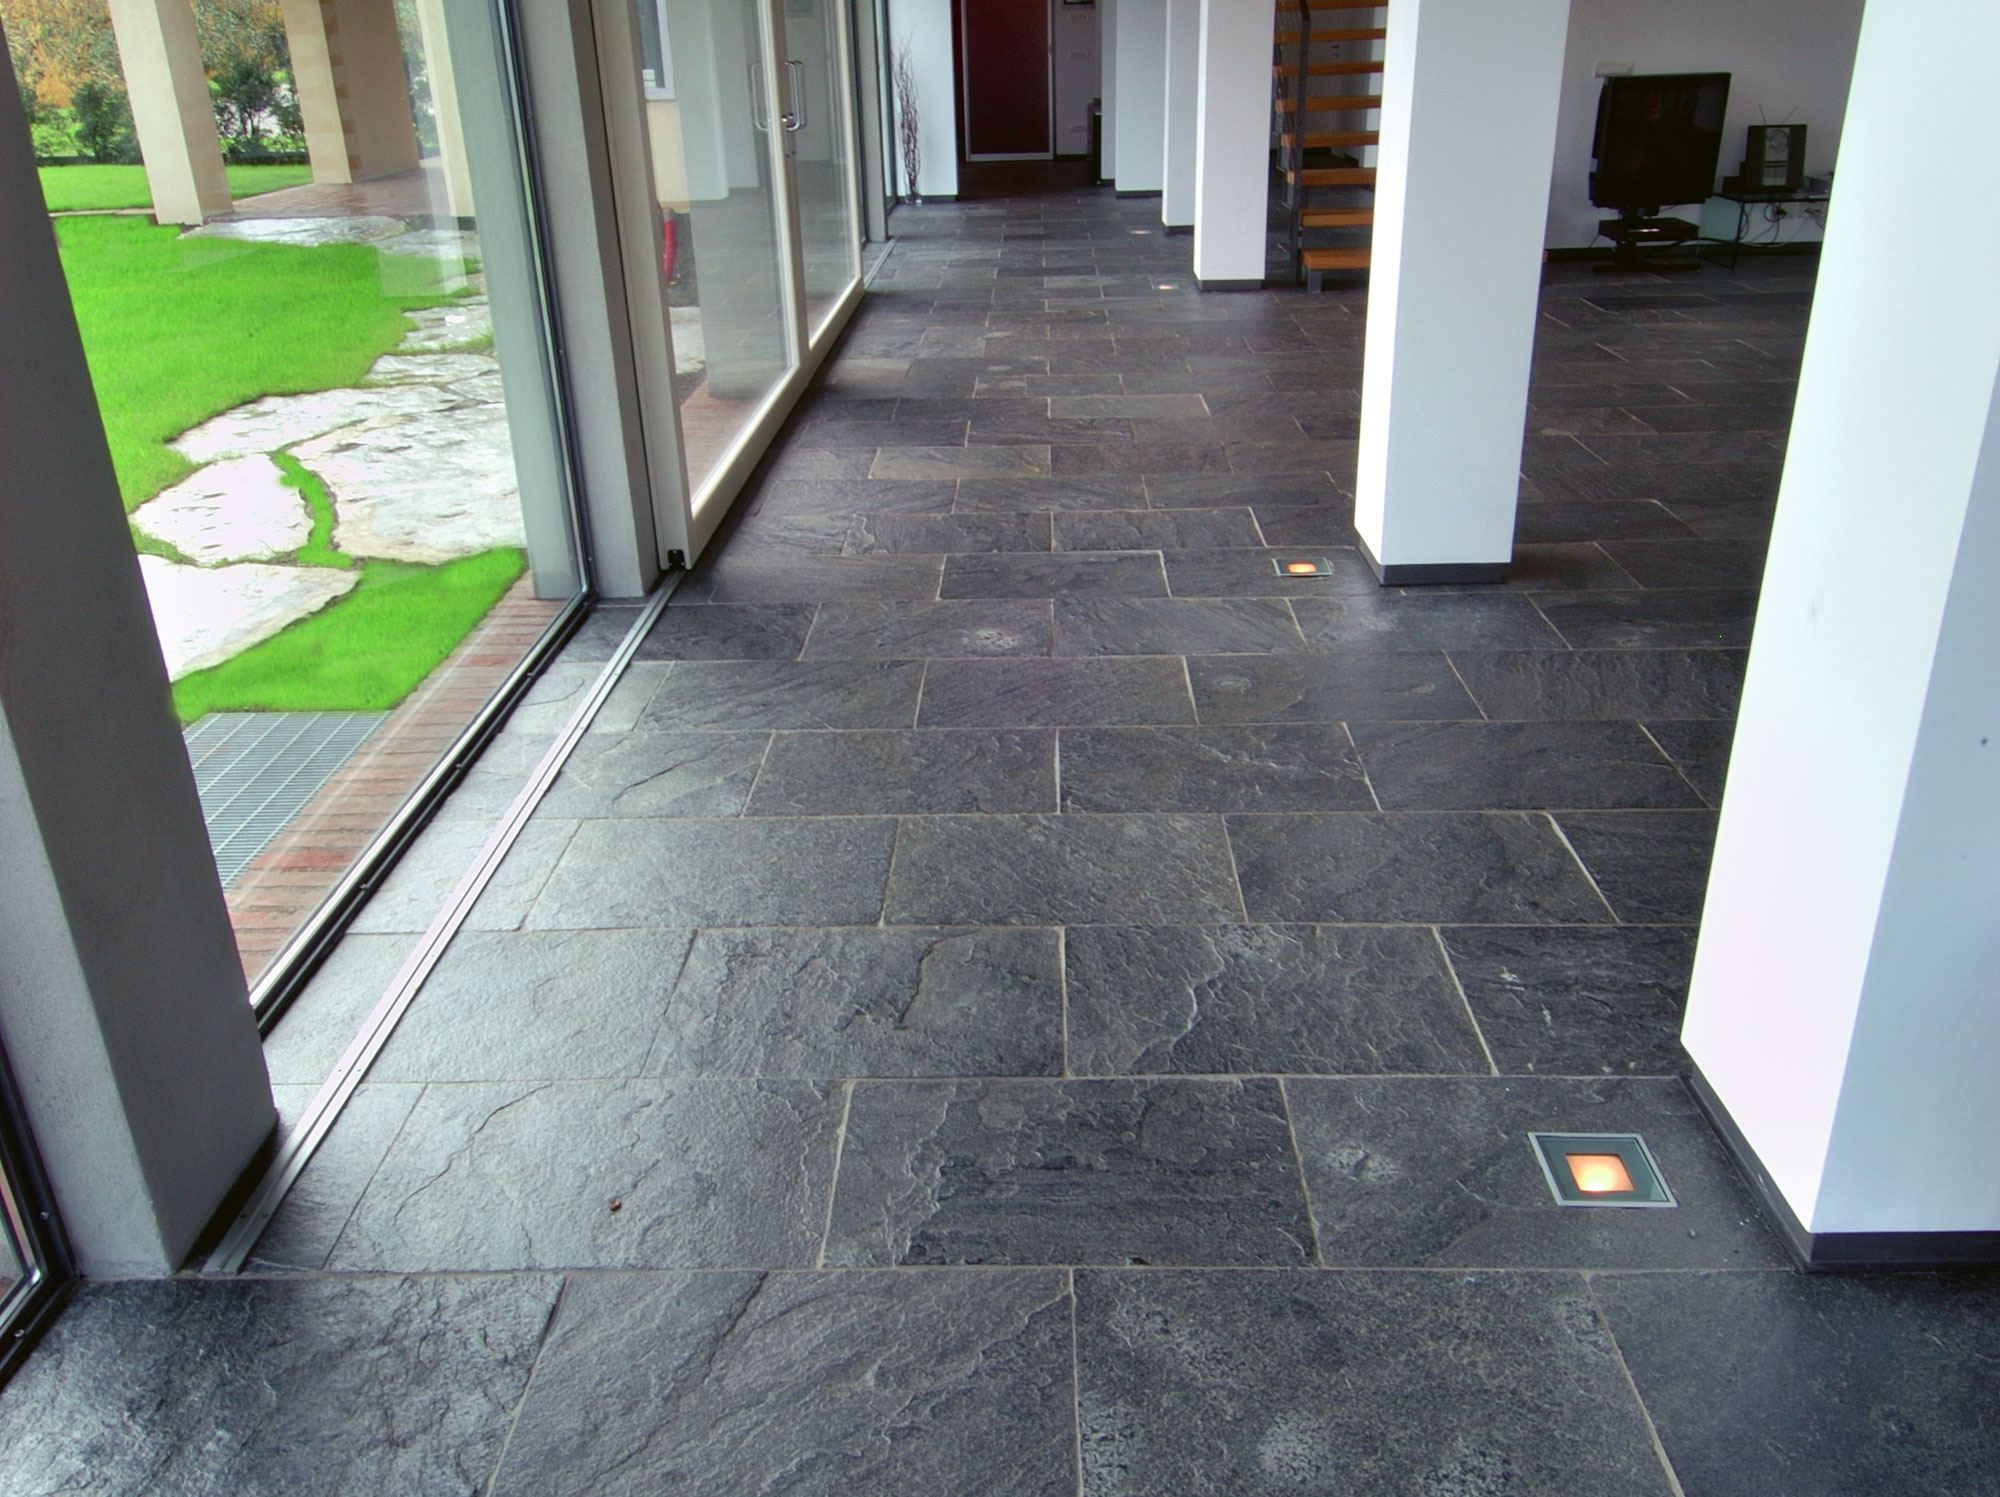 Artesia Stone Wall Floor Tiles By Artesia International